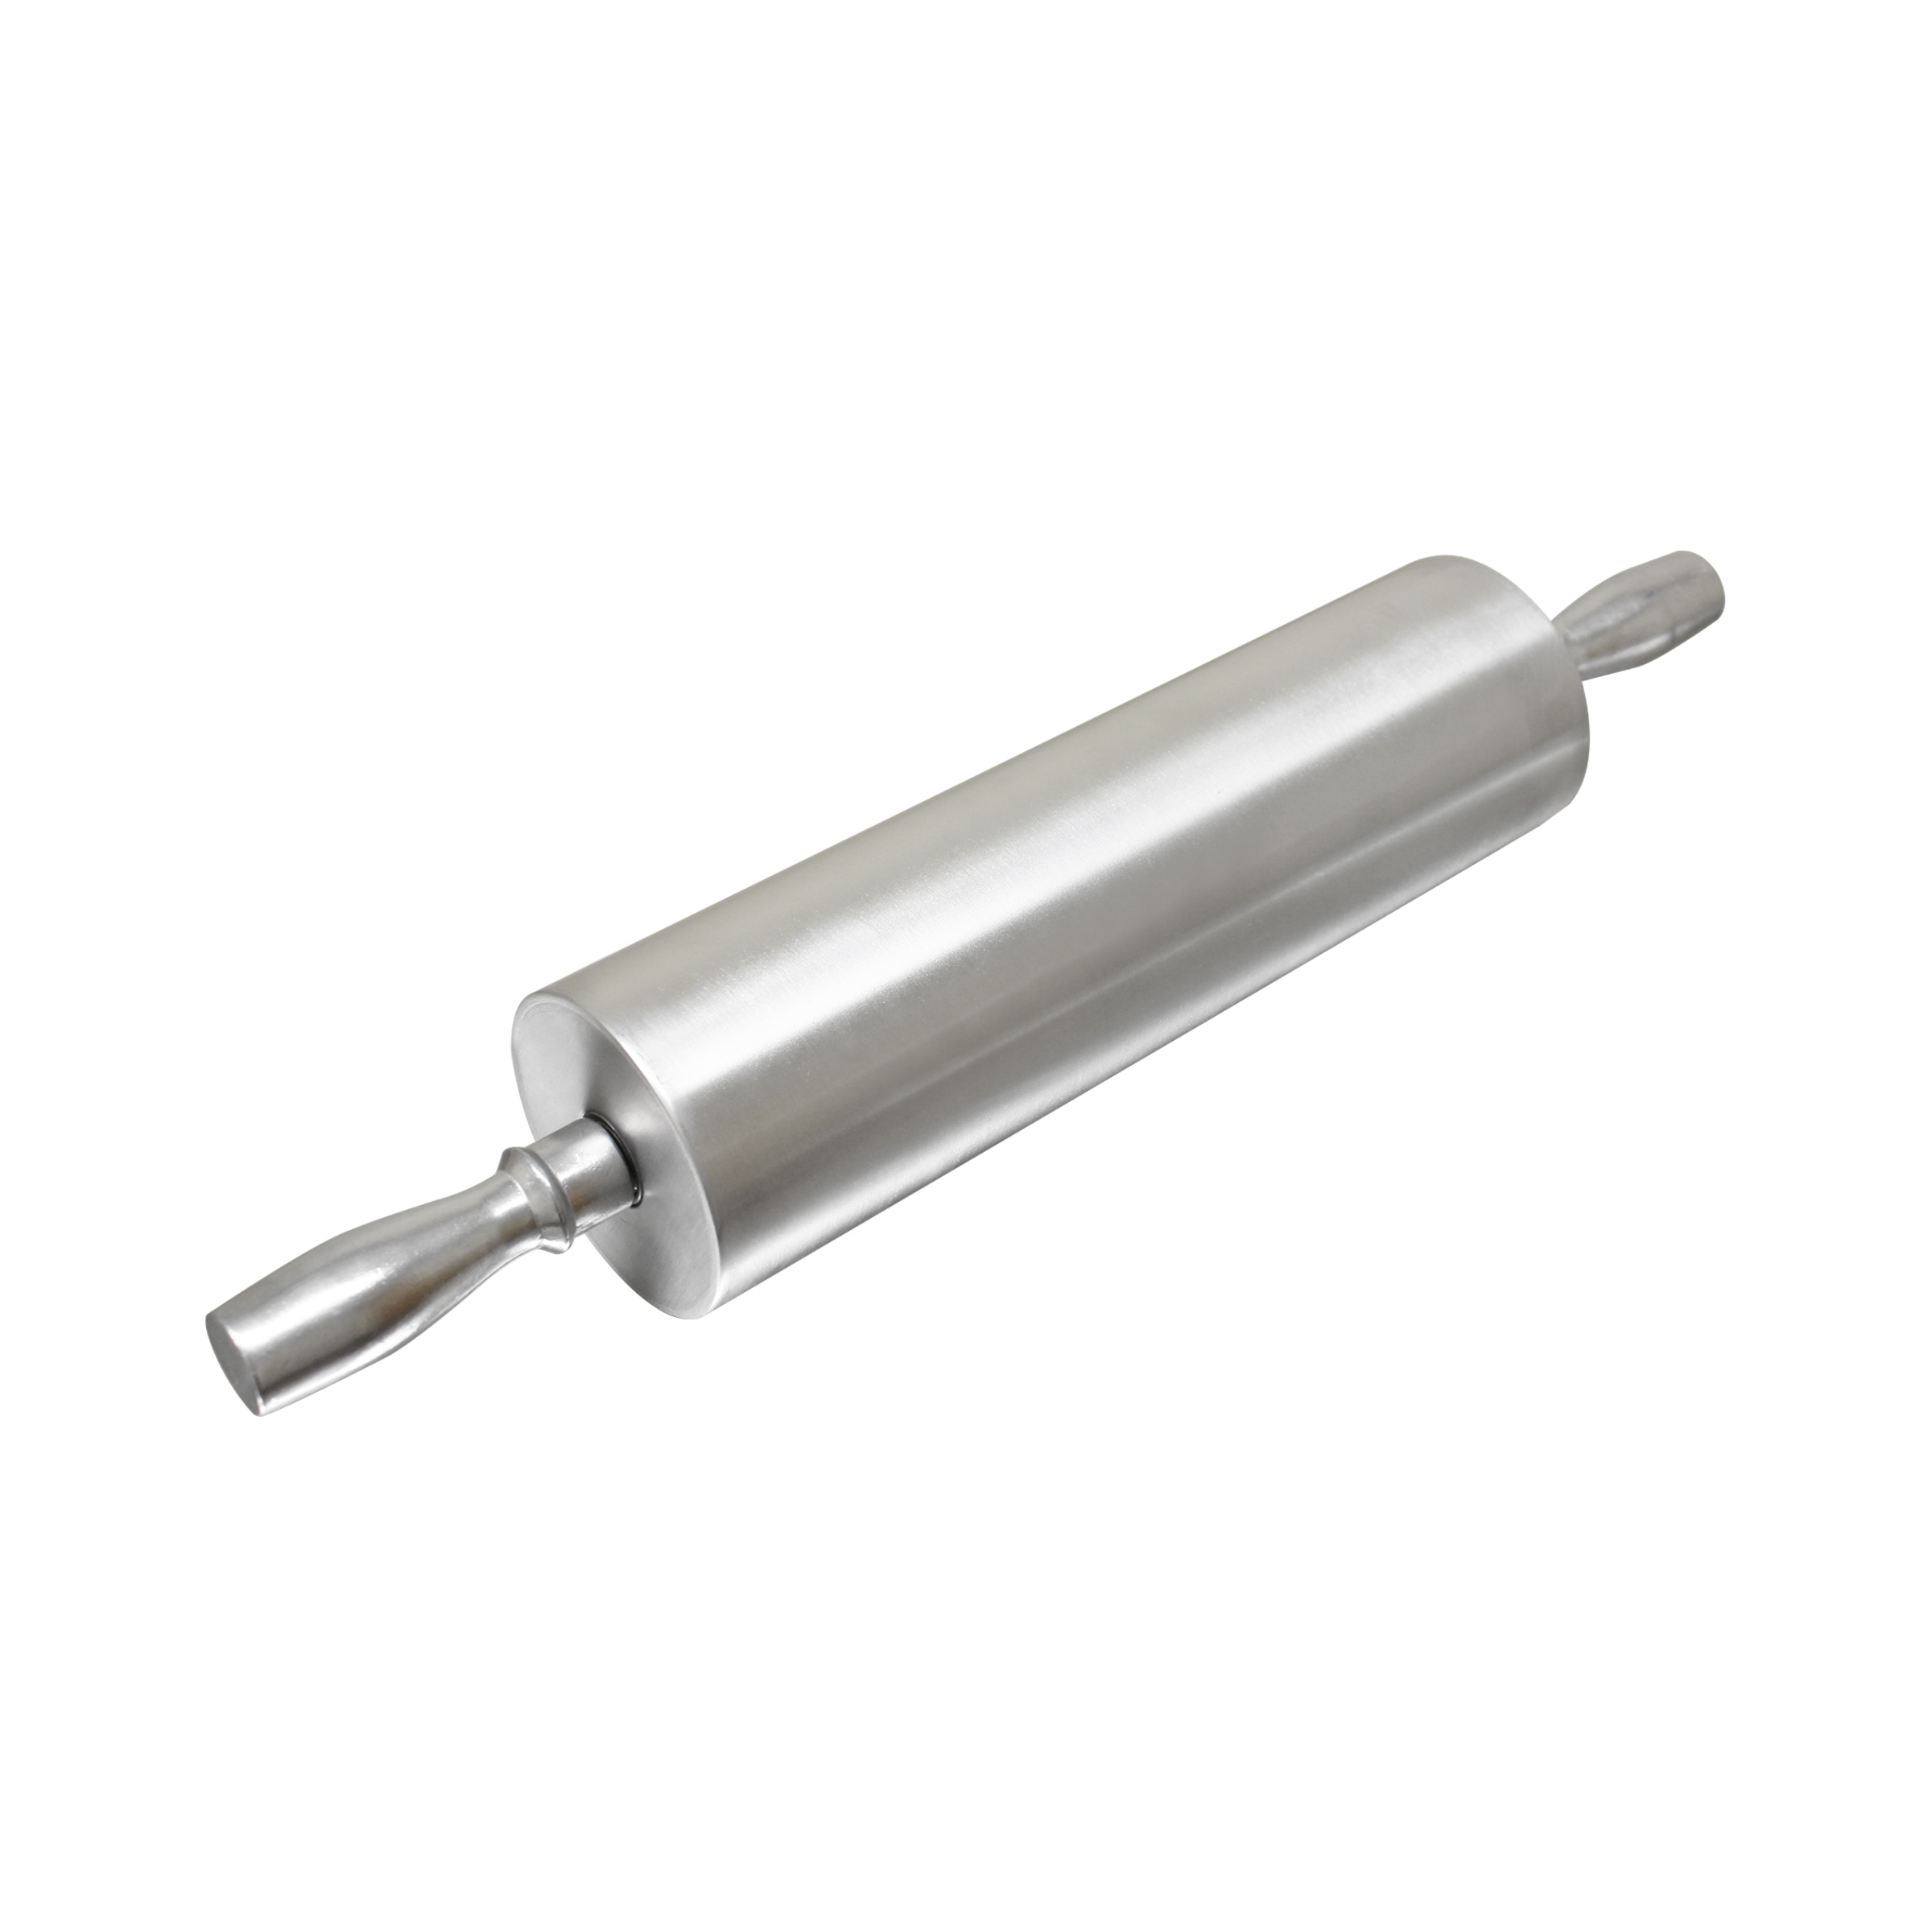 Aluminum Rolling Pin 15 Inch, Comes In Each by Thunder Group